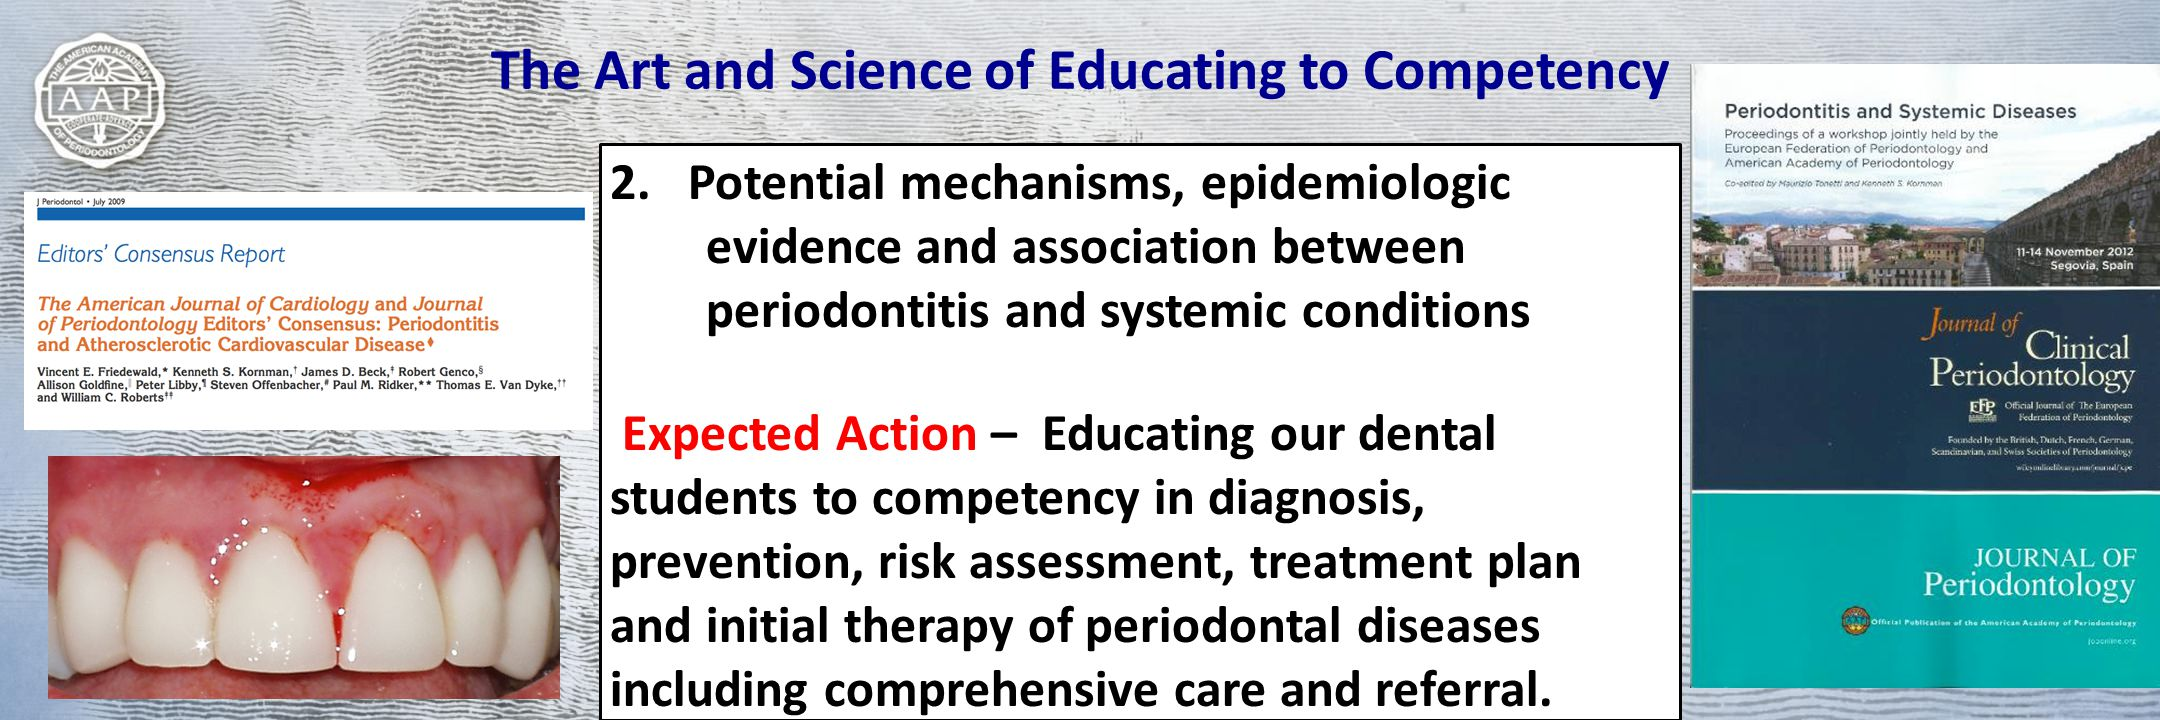 The Art and Science of Educating to Competency 2.Potential mechanisms, epidemiologic evidence and association between periodontitis and systemic conditions Expected Action – Educating our dental students to competency in diagnosis, prevention, risk assessment, treatment plan and initial therapy of periodontal diseases including comprehensive care and referral.